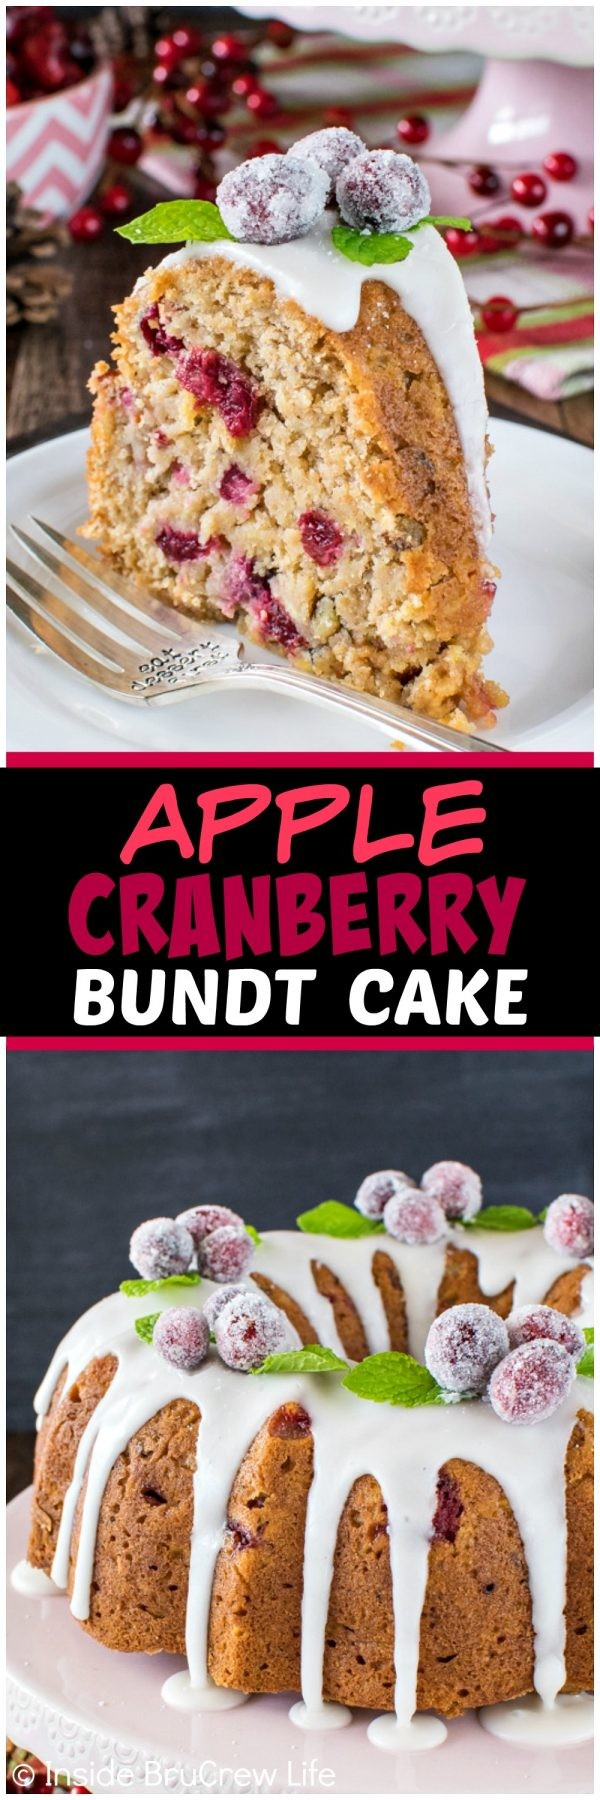 Apple Cranberry Bundt Cake - a sweet glaze and fresh apples & berries make this a fun and festive cake. Great recipe for holiday parties!